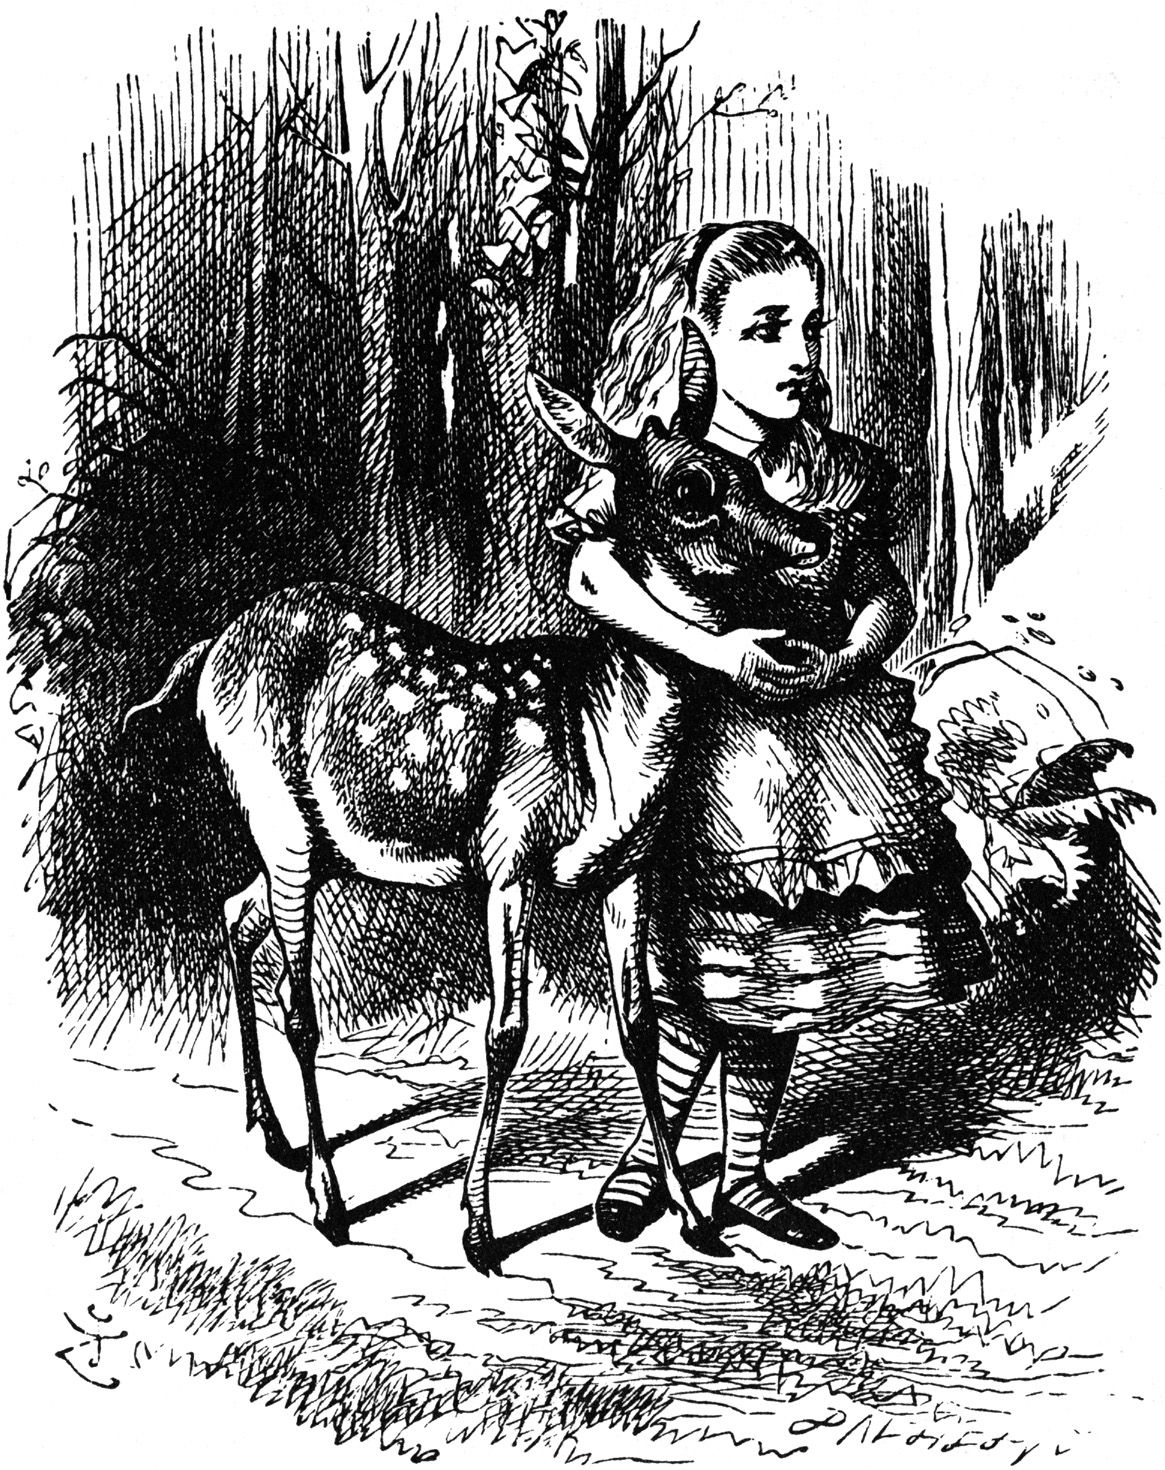 Illustration from Through The Looking Glass, by Lewis Carroll